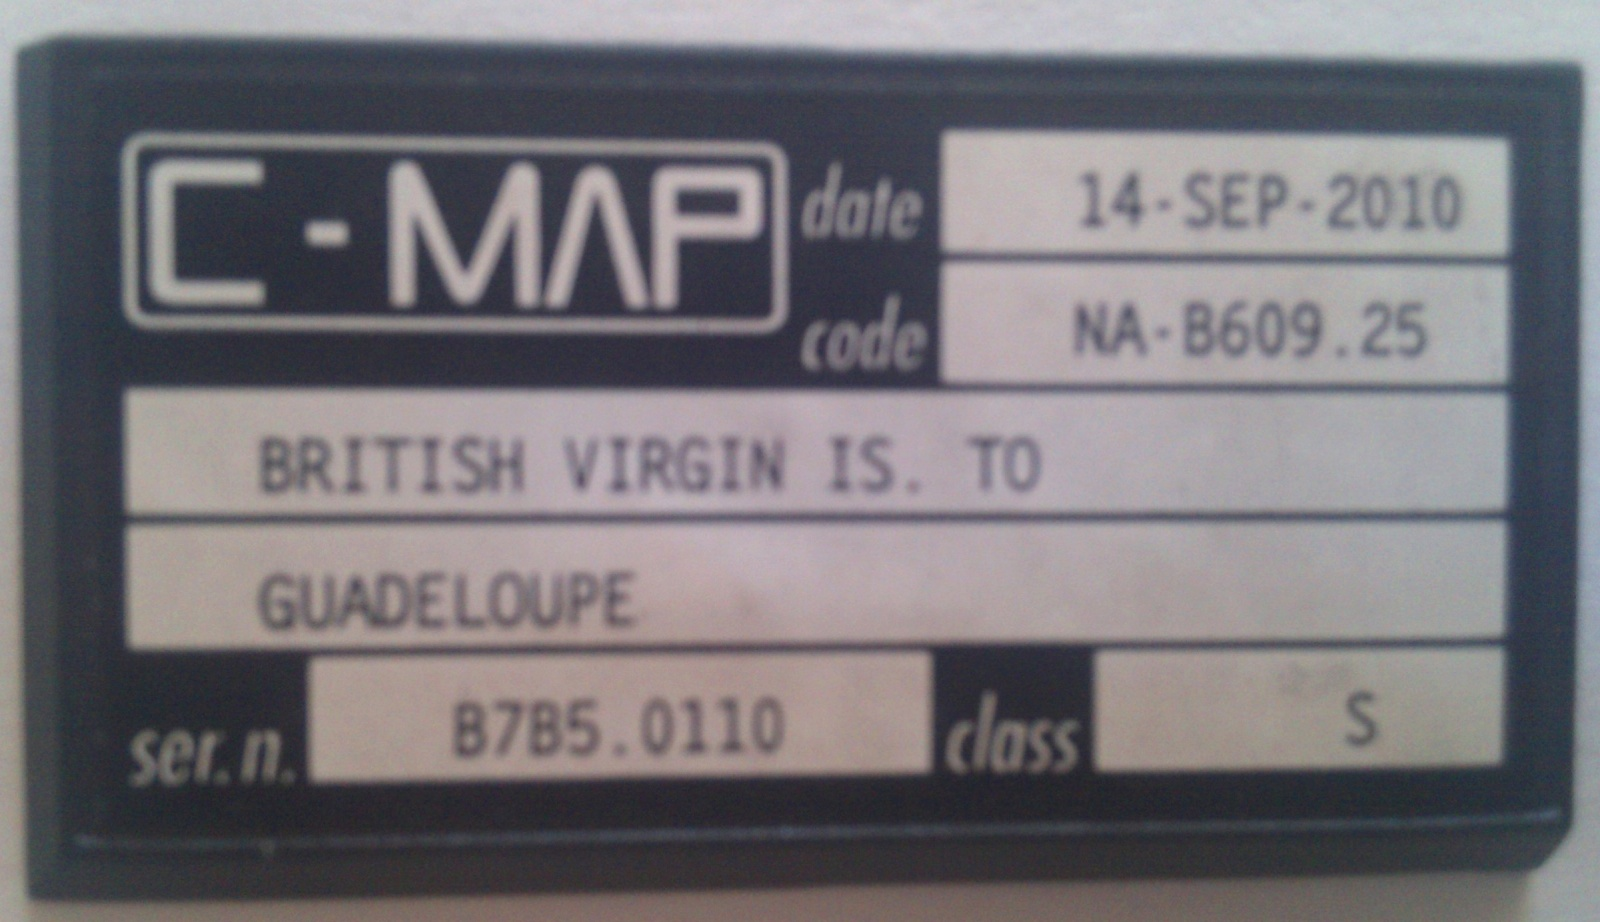 Click image for larger version  Name:C - Map British Virgin Is. to Guadeloupe.jpg Views:95 Size:324.3 KB ID:41383